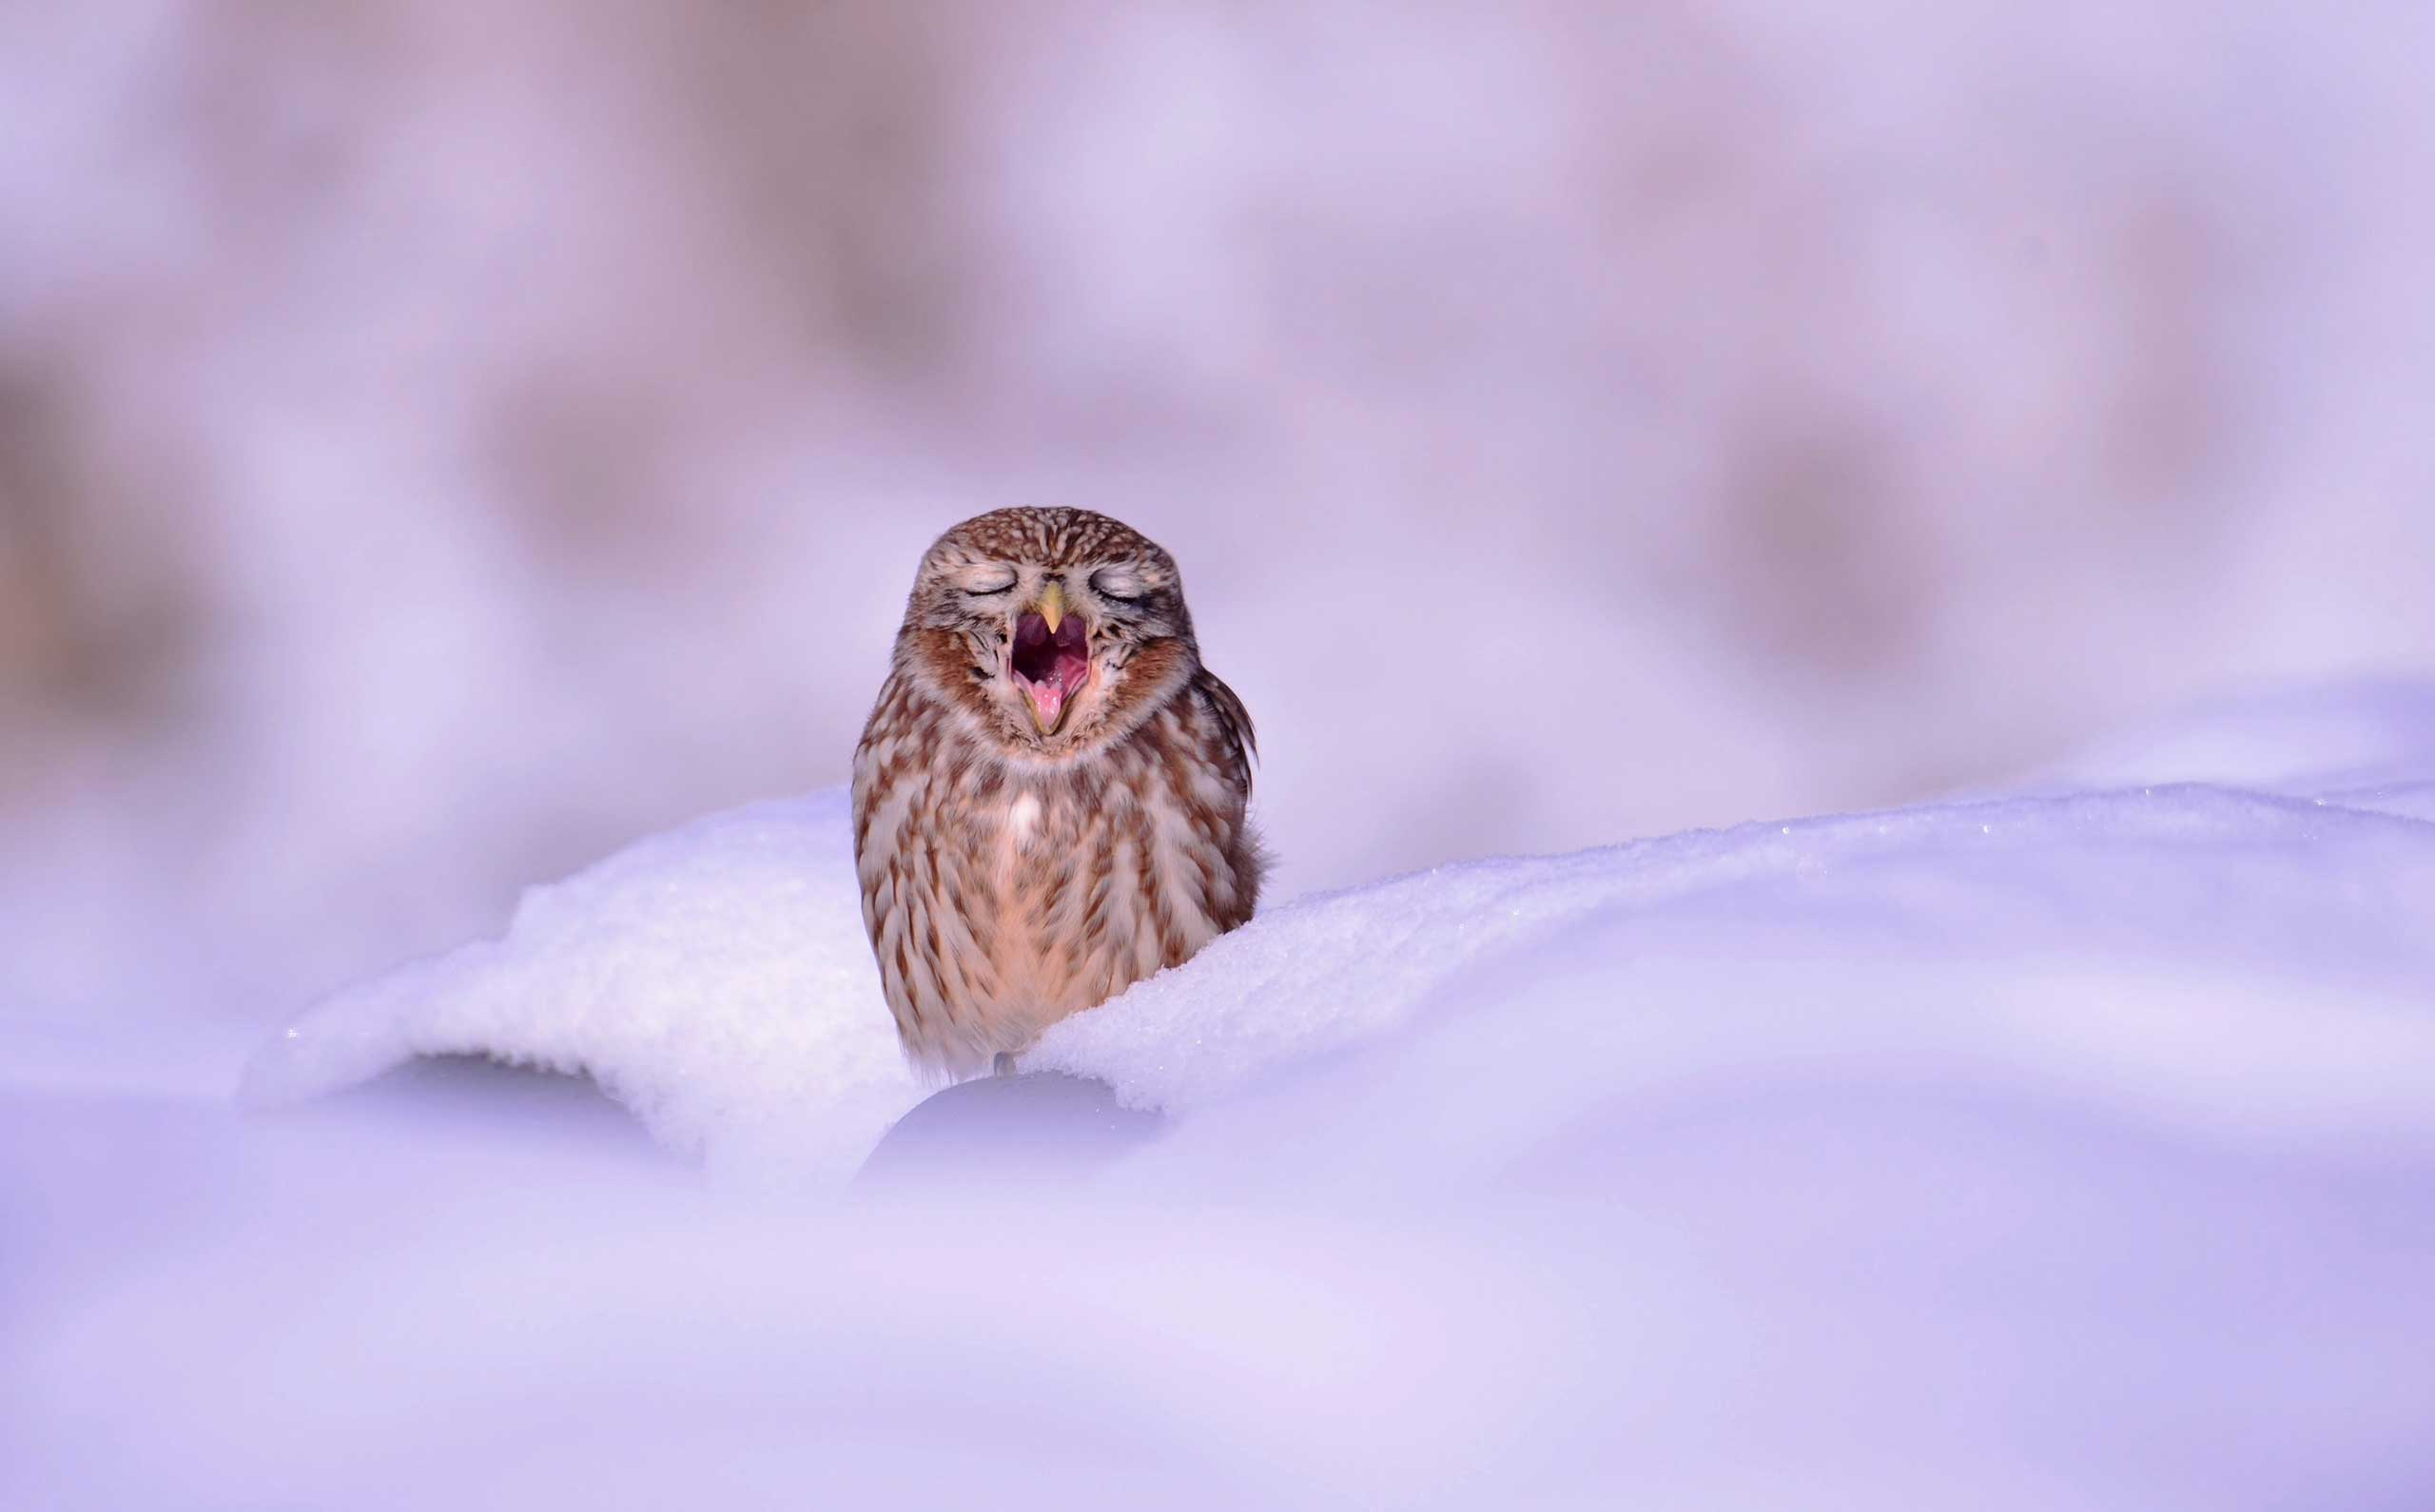 A small owl yawns as it sits in the snow in Ansung City, Gyeonggi Province, South Korea, Dec. 4, 2014.